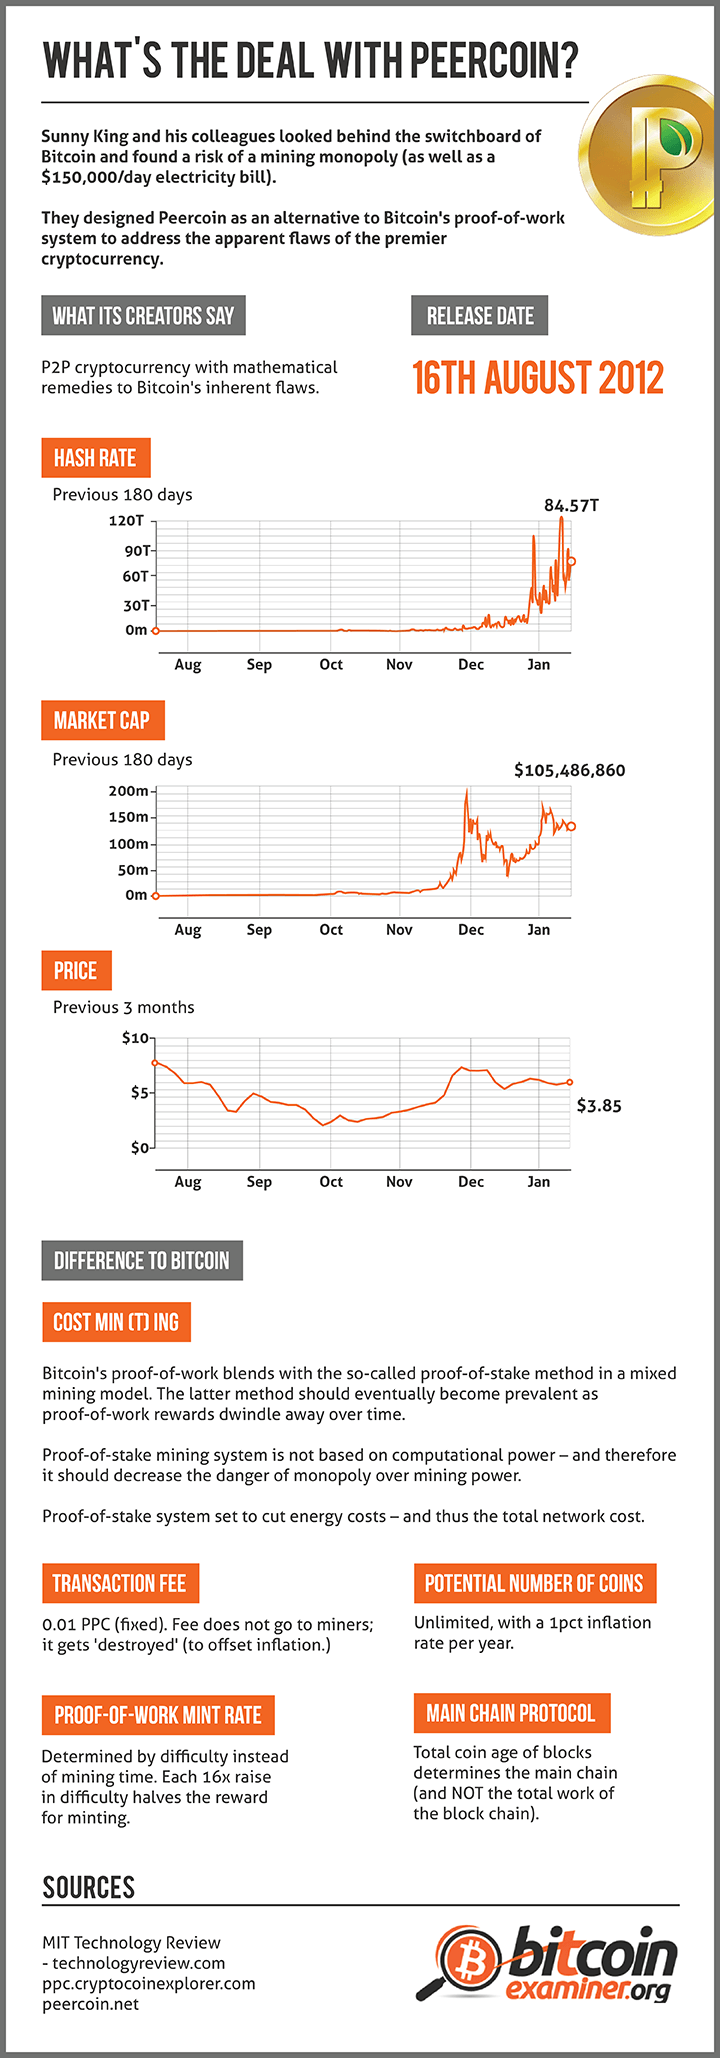 What's the deal with Peercoin? [infographic]